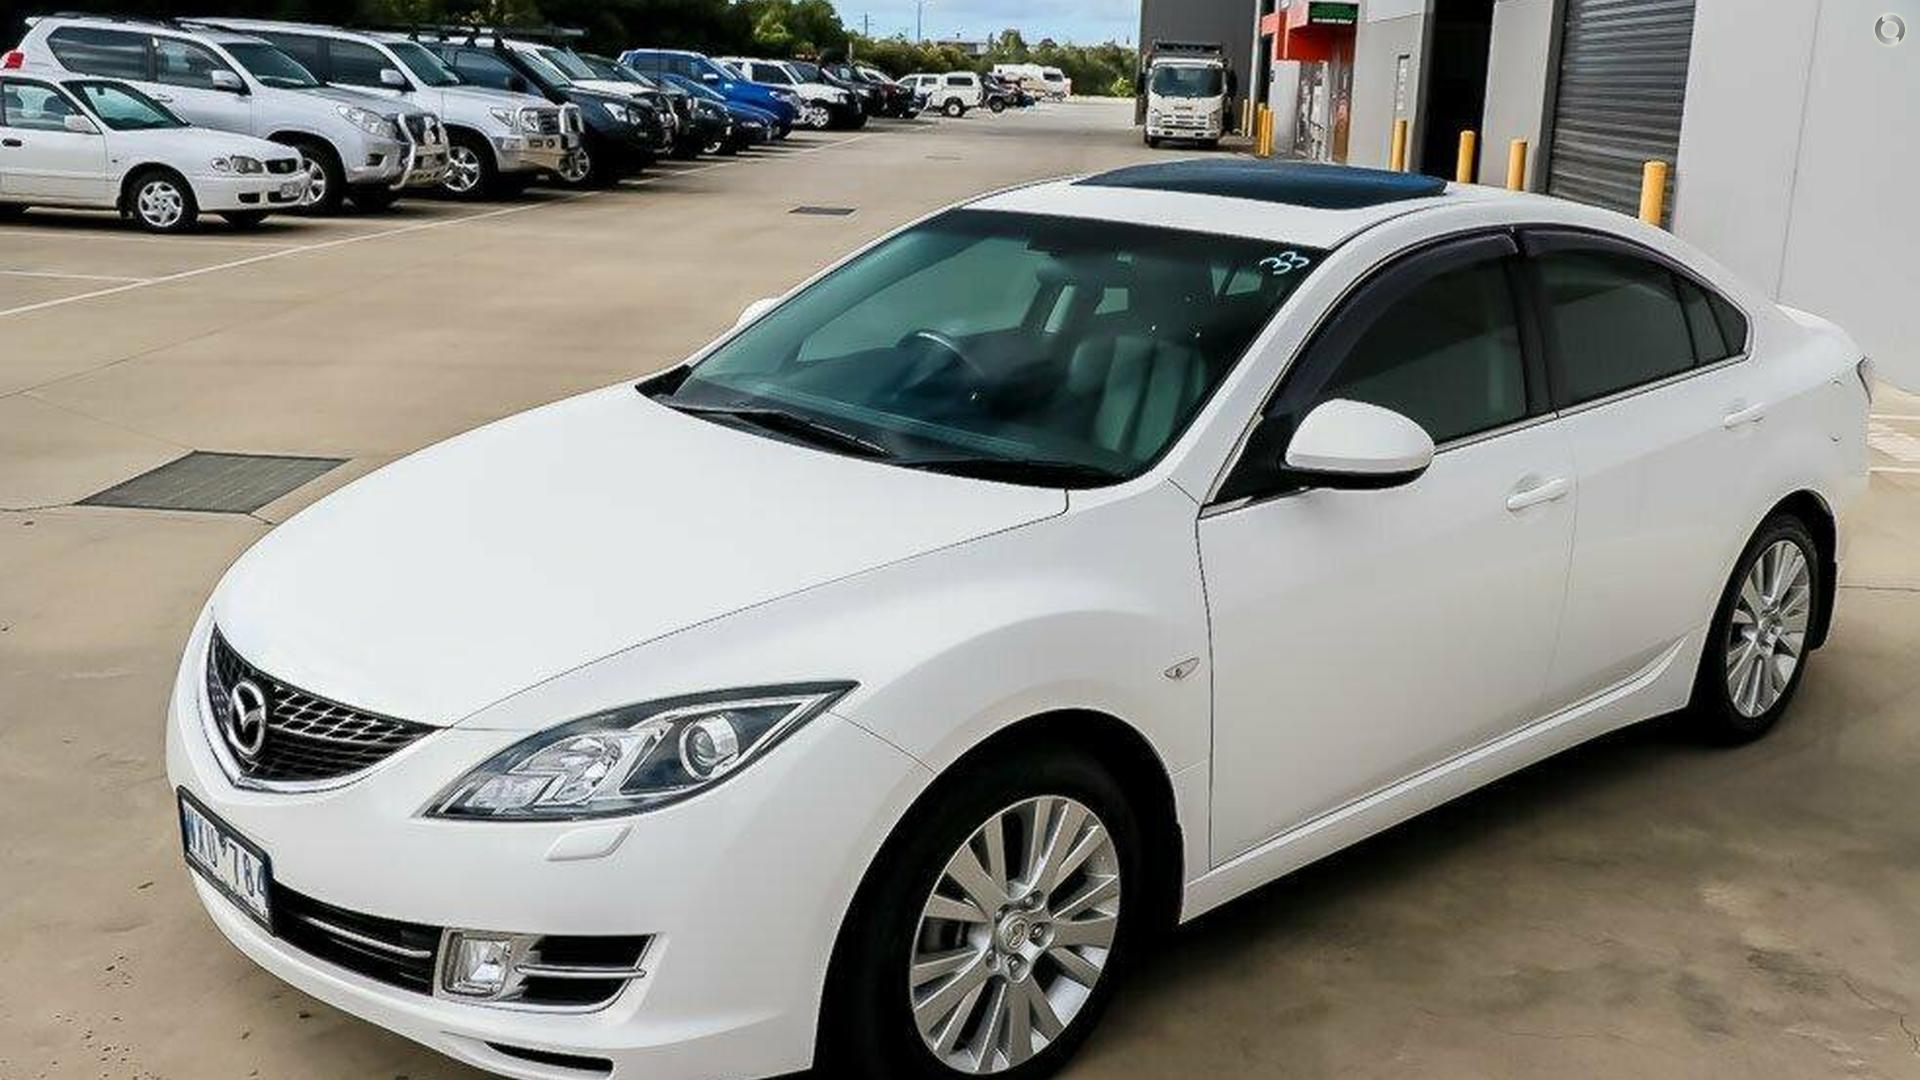 2008 Mazda 6 Luxury GH Series 1